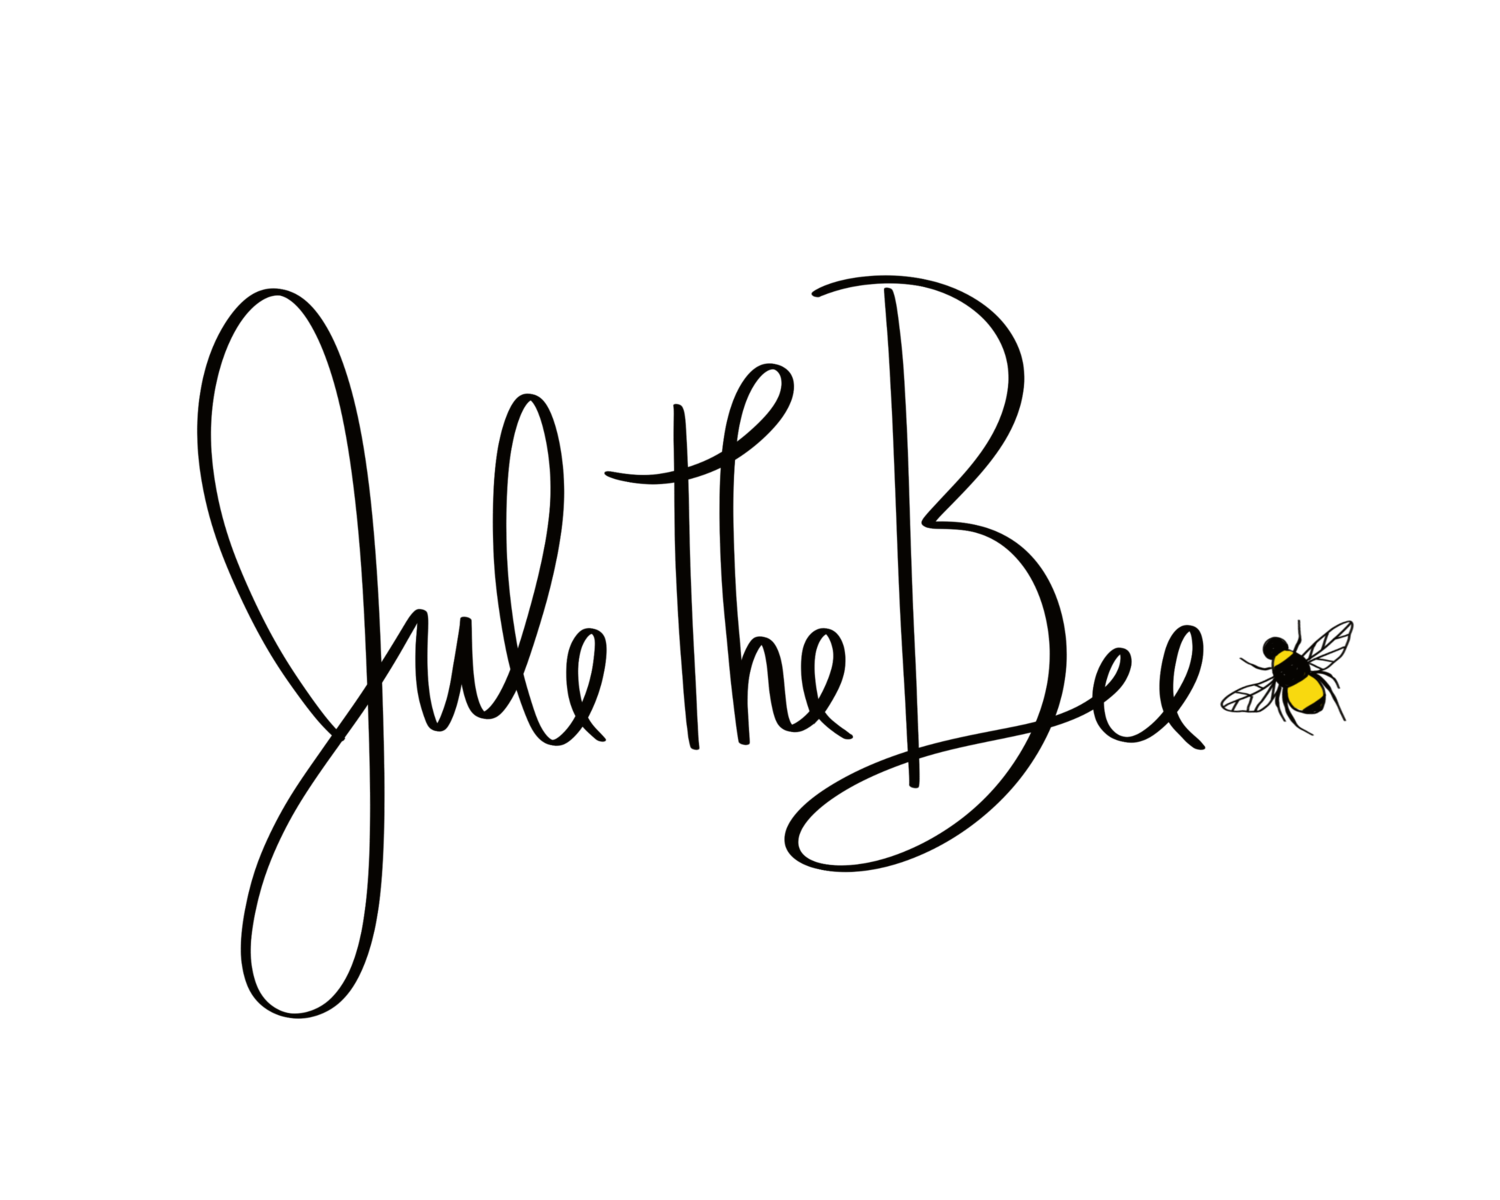 Jule the bee